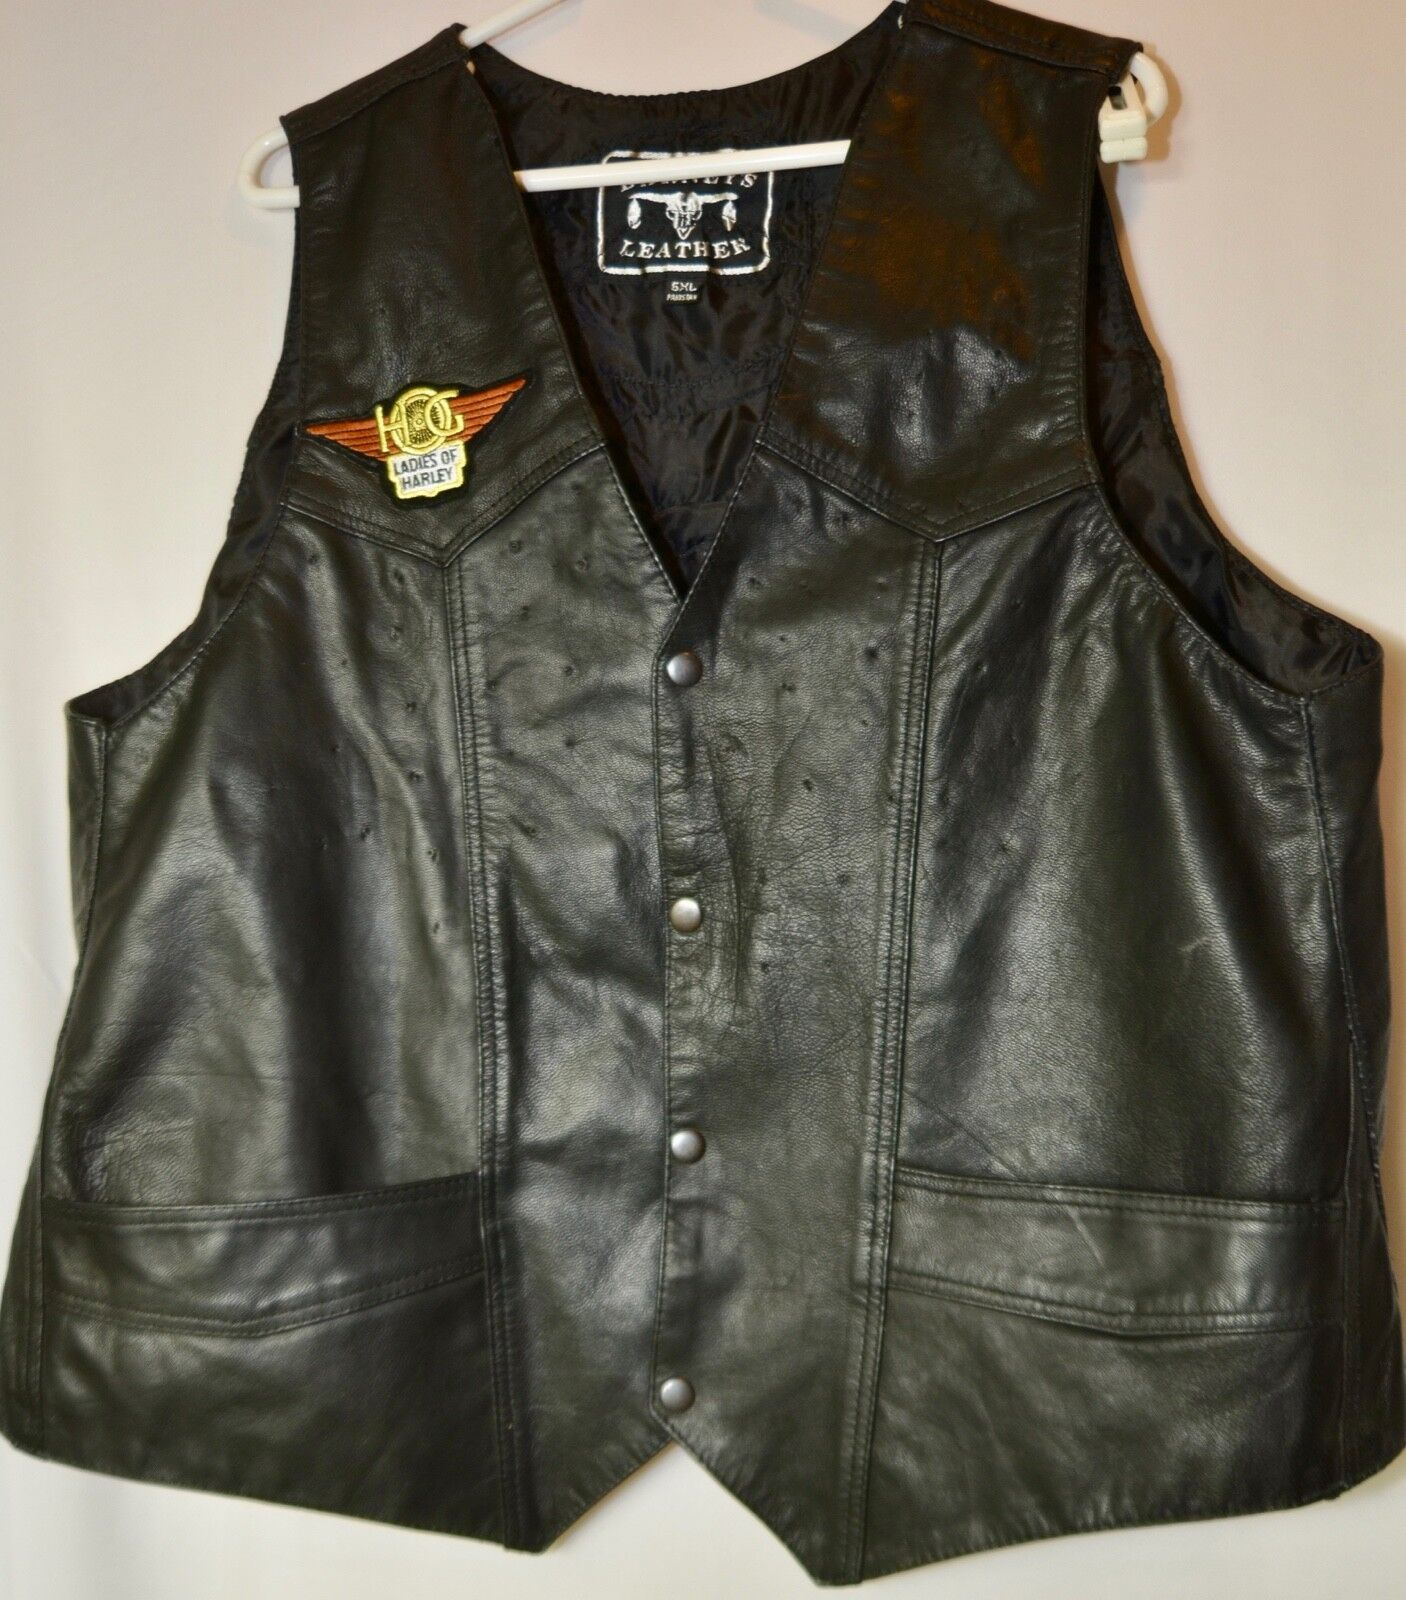 Barneys Leather Motorcycle vest leather Women 5XL.